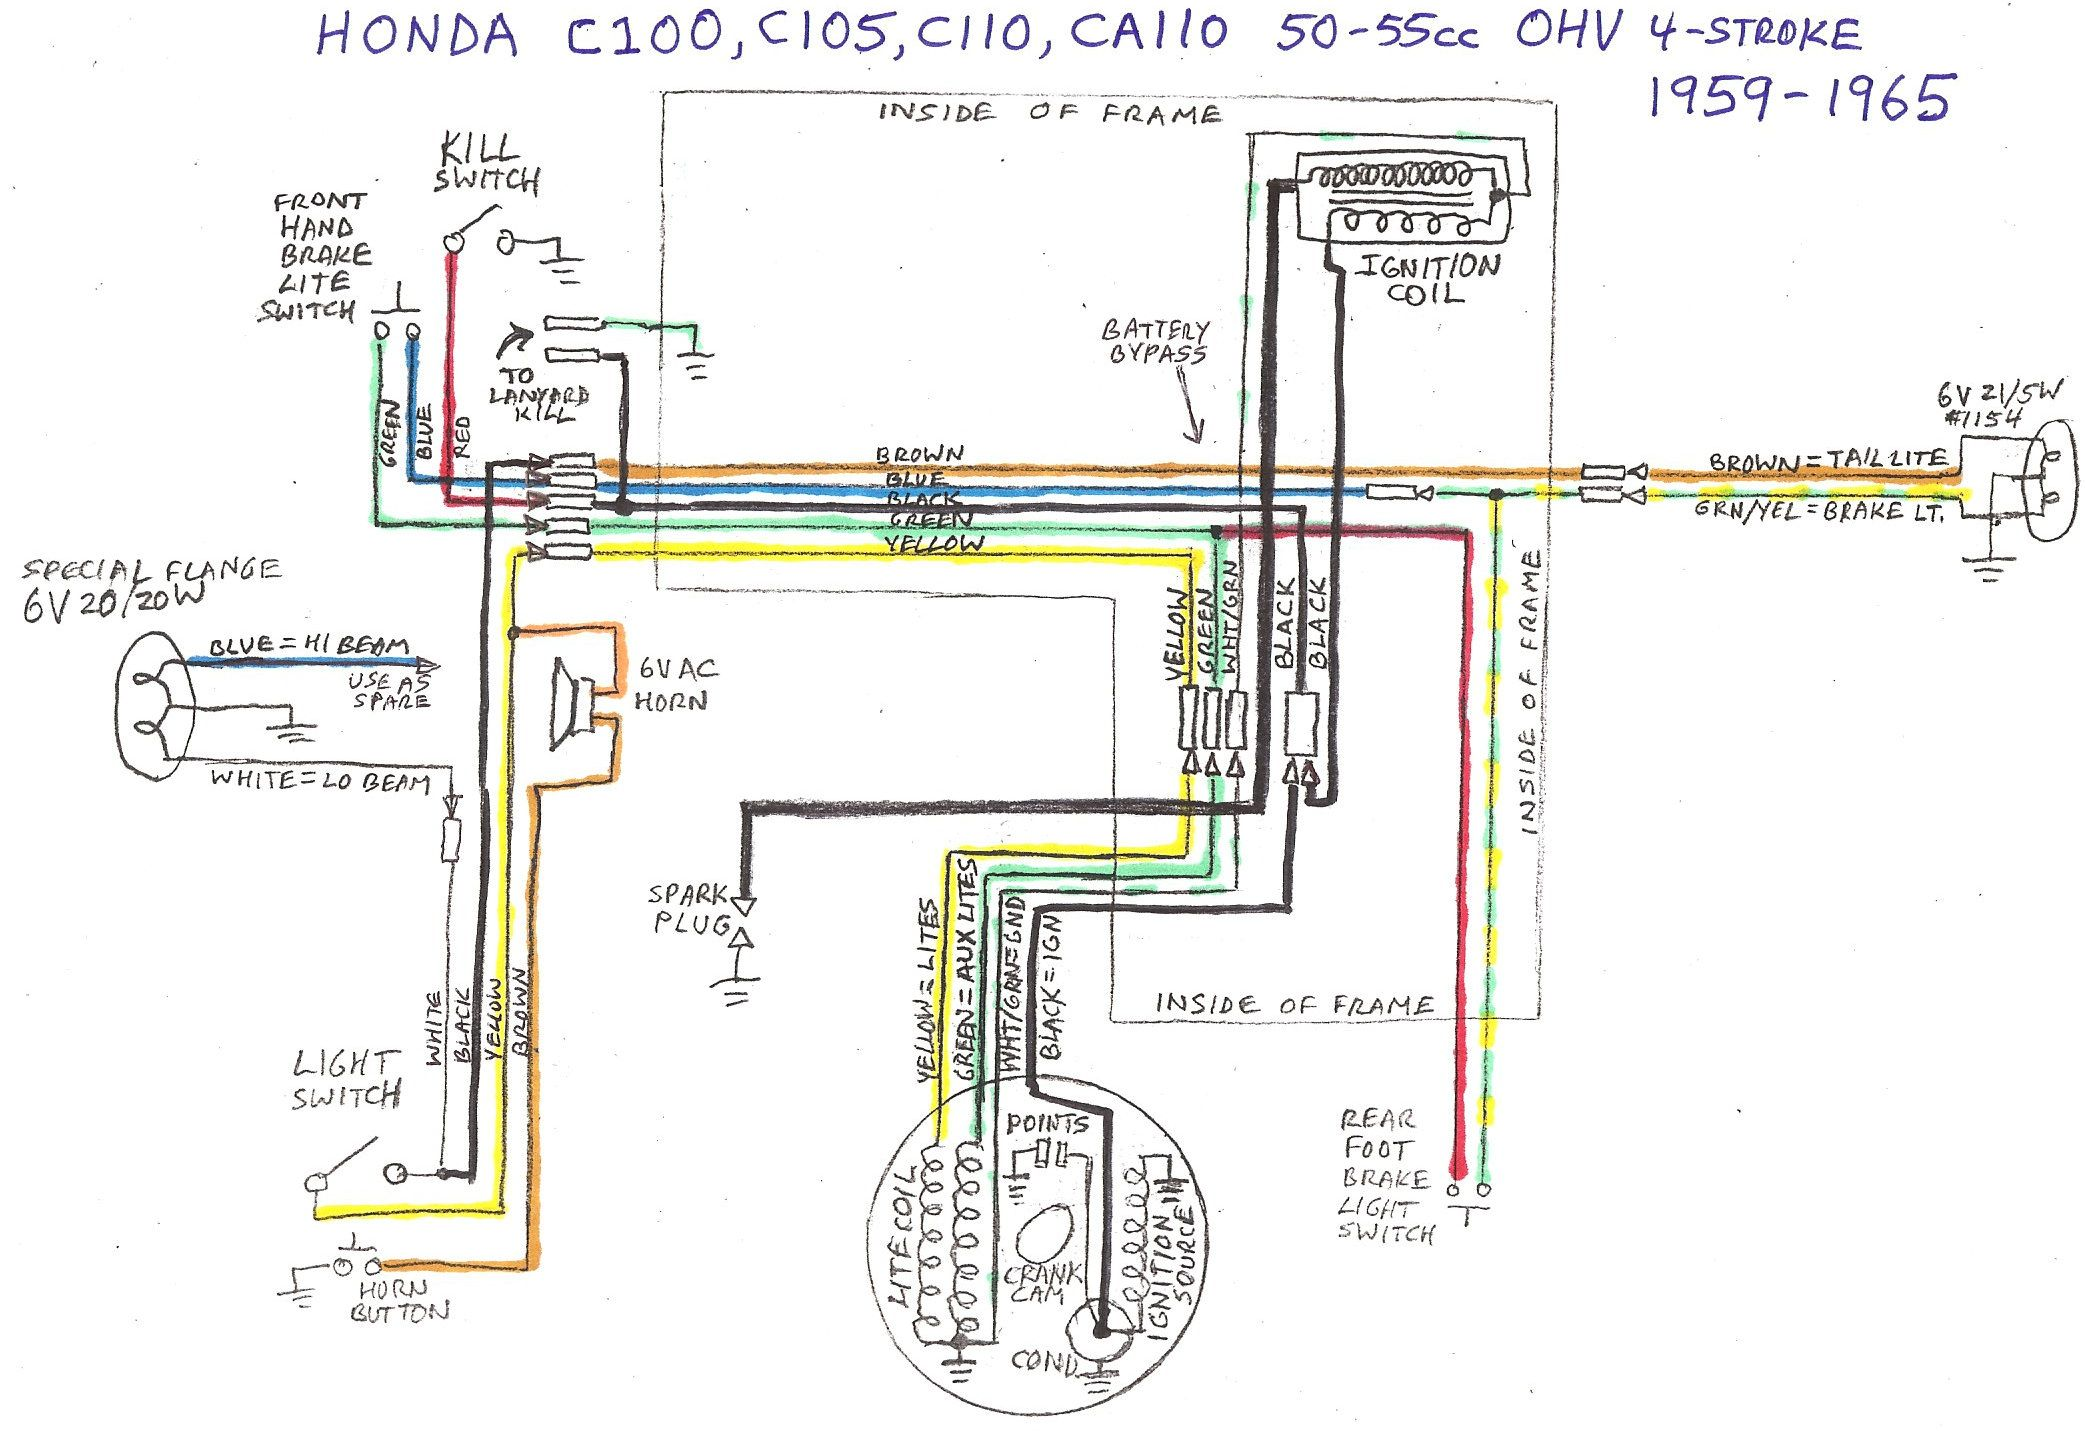 WRG-7963] 1970s Honda Cub Wiring Diagram on